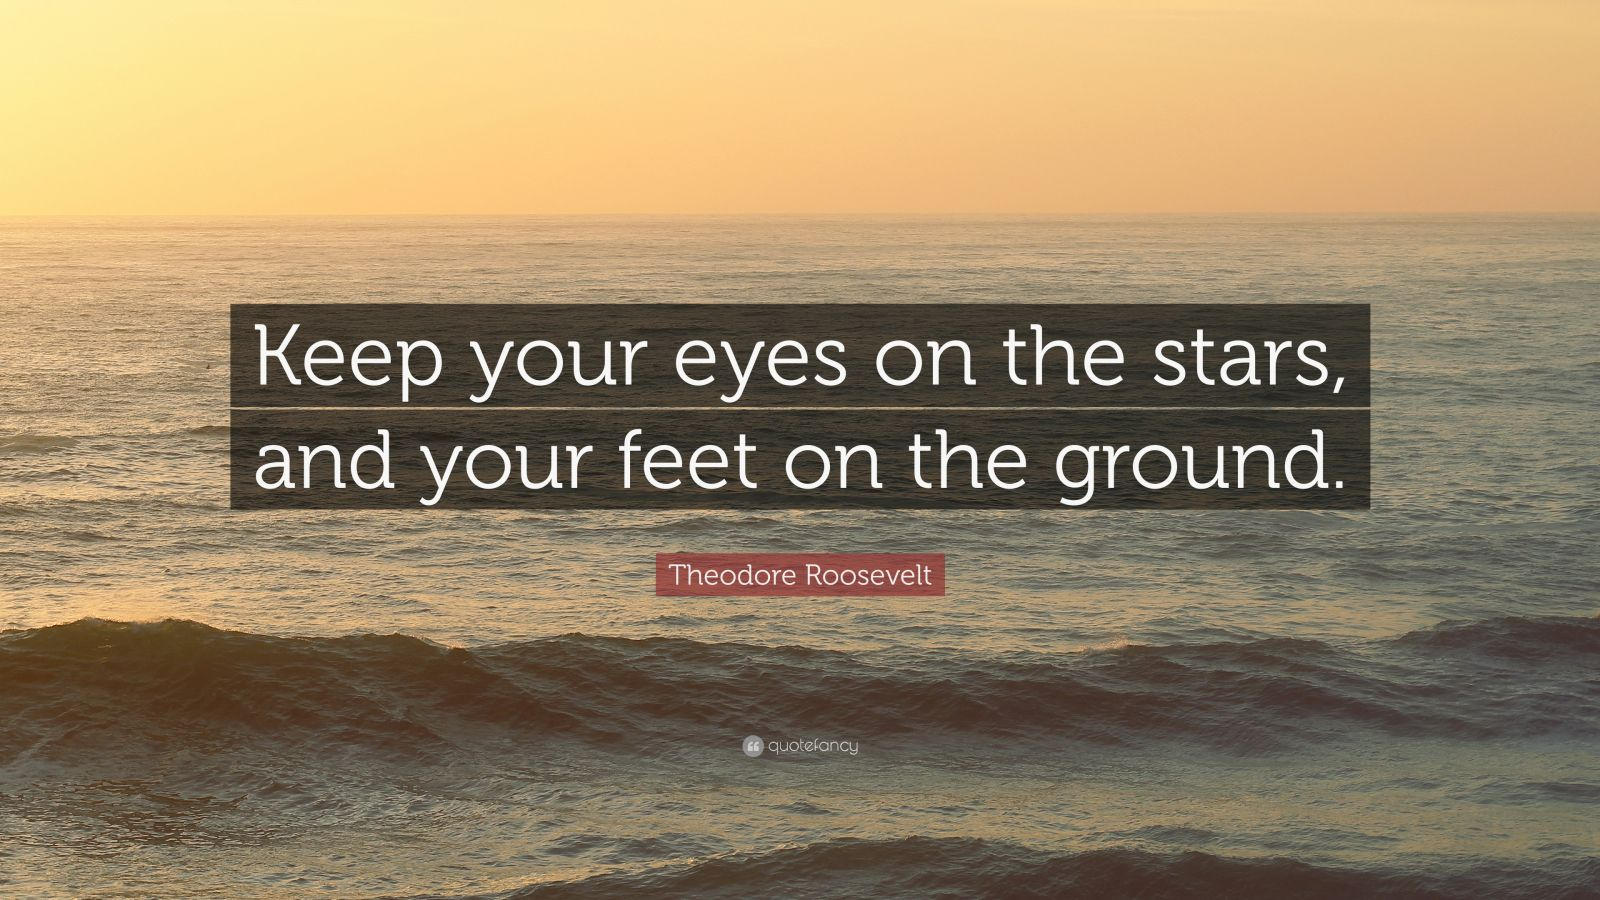 Theodore Roosevelt Quote: Keep your eyes on the stars